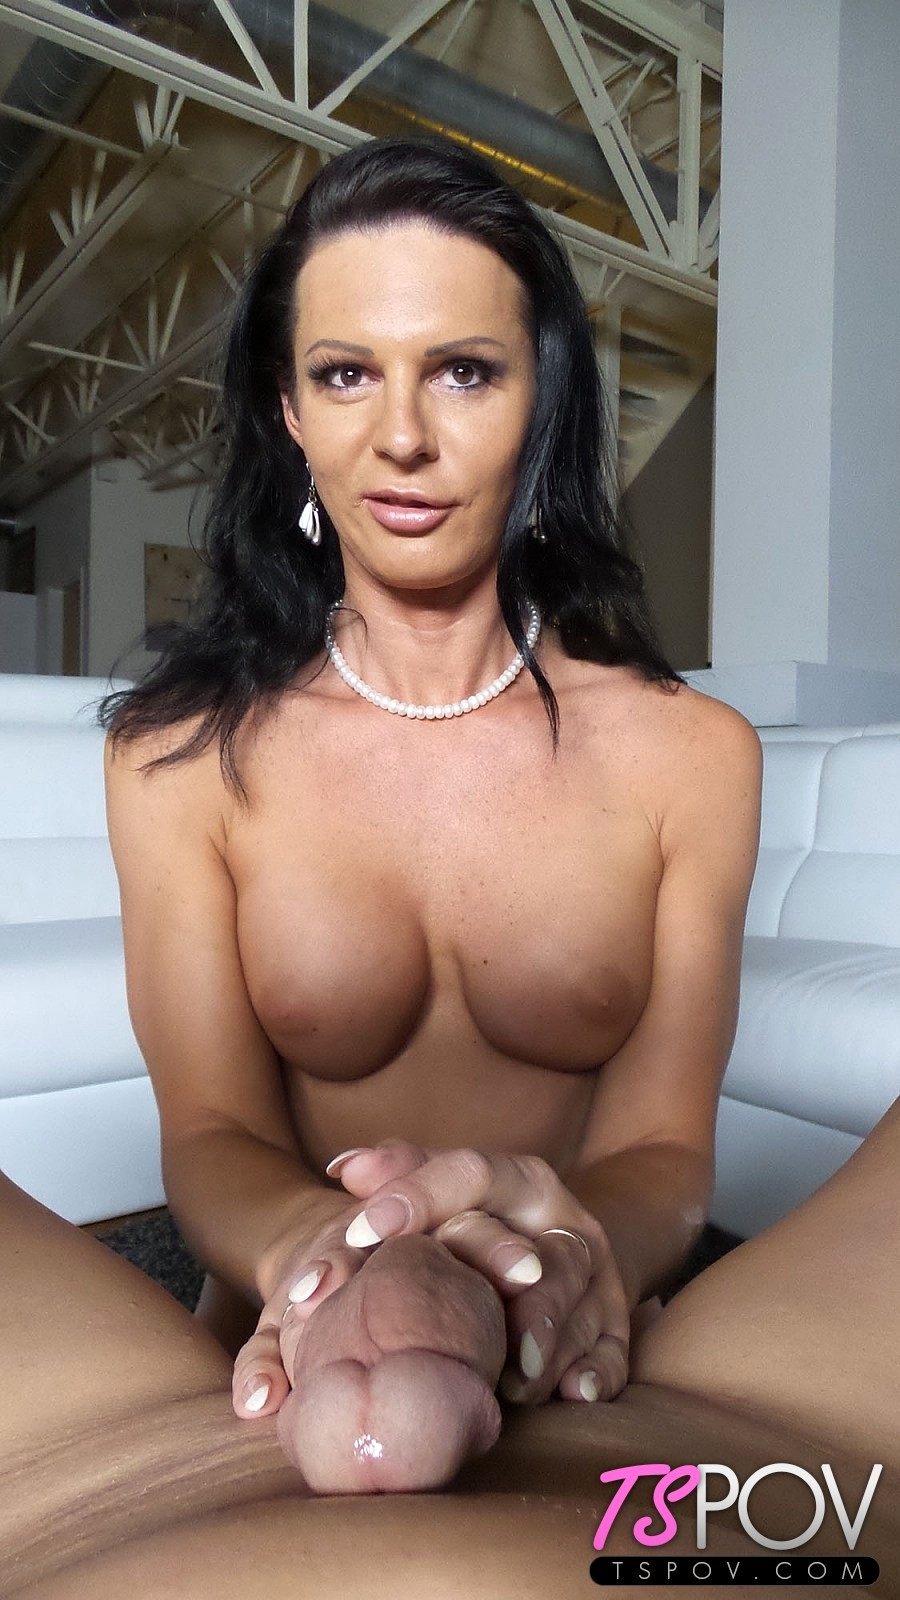 Lina Cavalli Is A Inviting Russian TS That Is A Very Experi